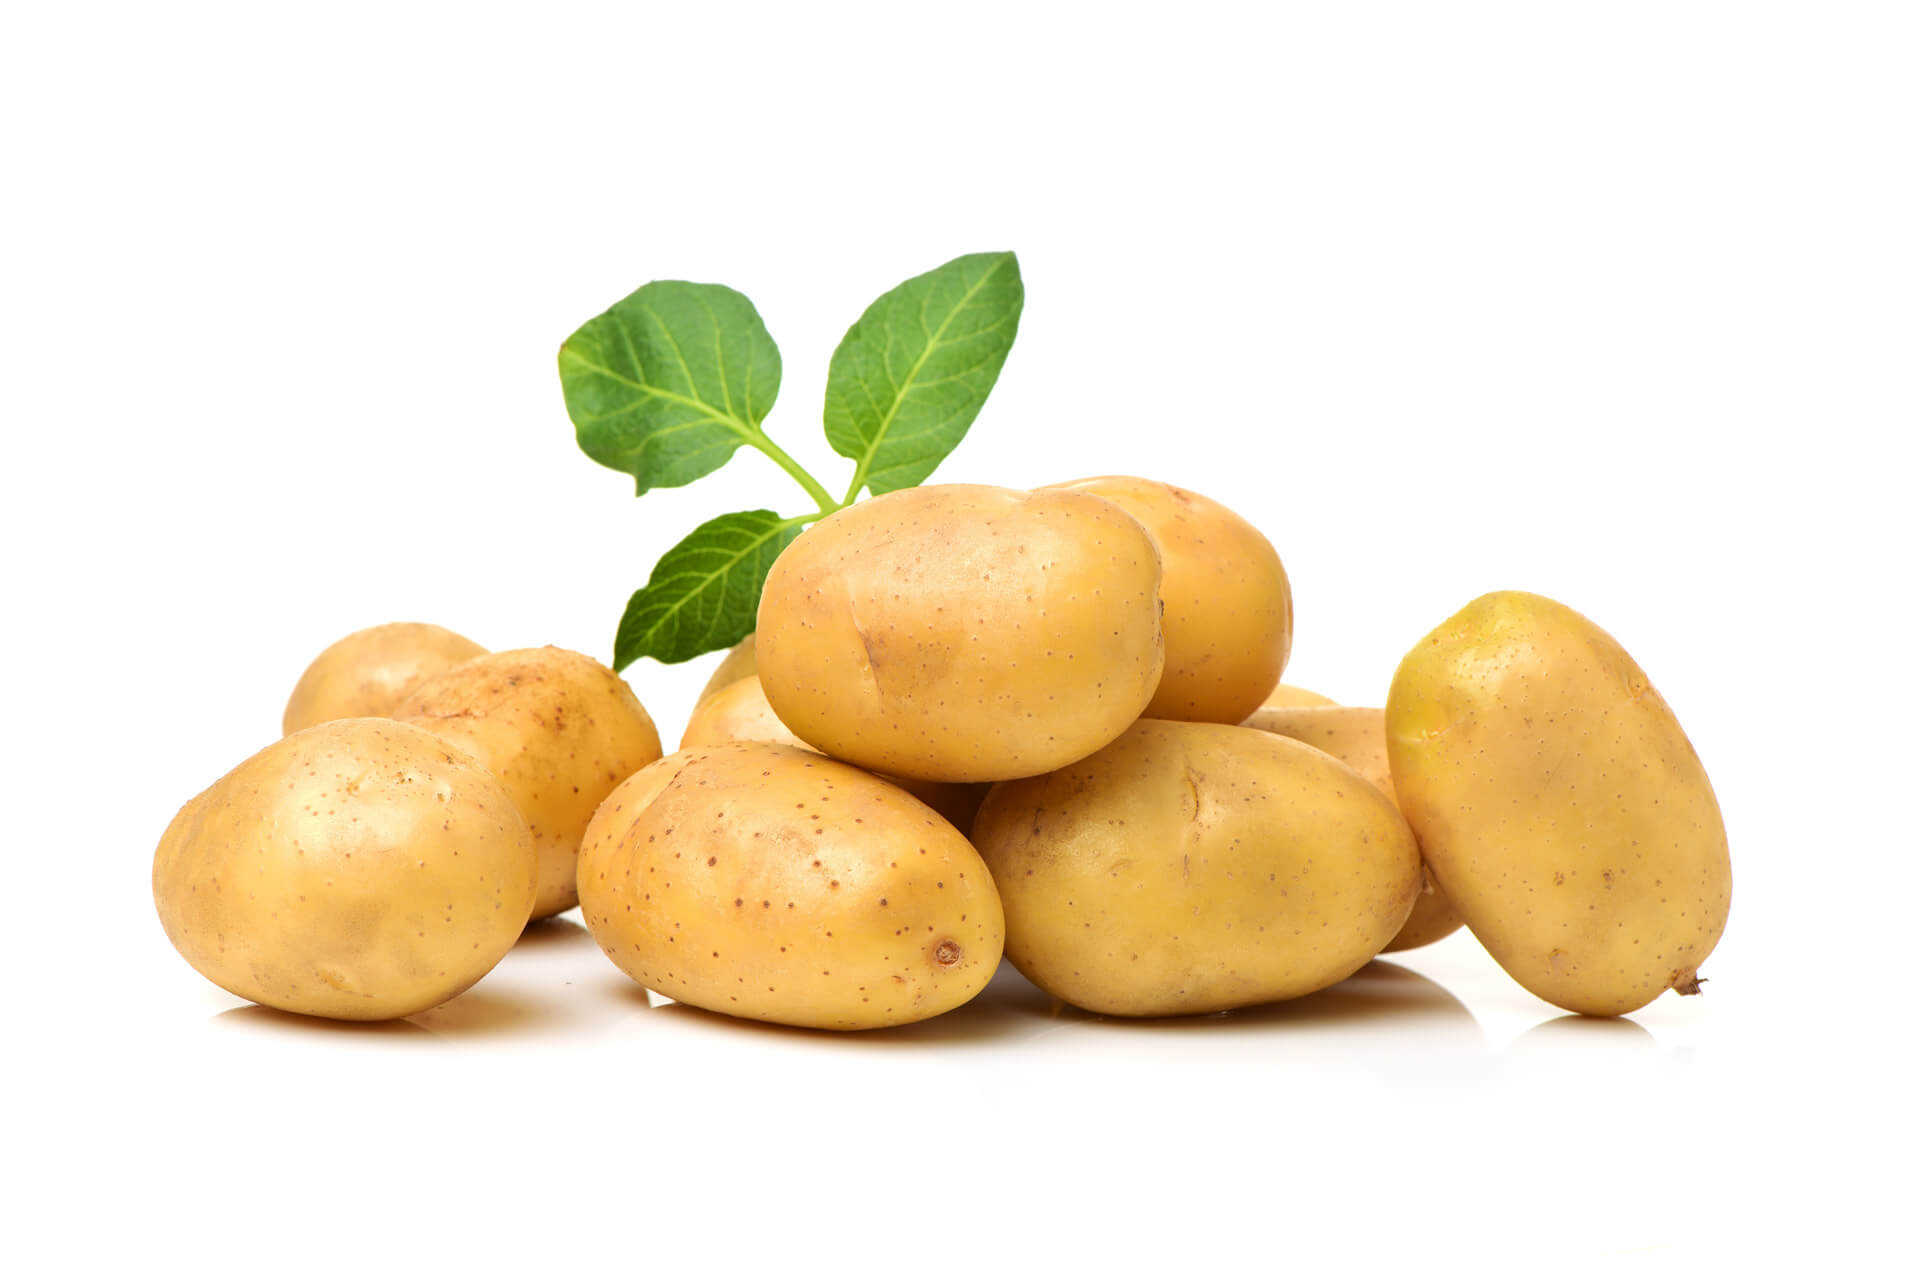 pile of potatoes on white background - what vegetables are safe for dogs?